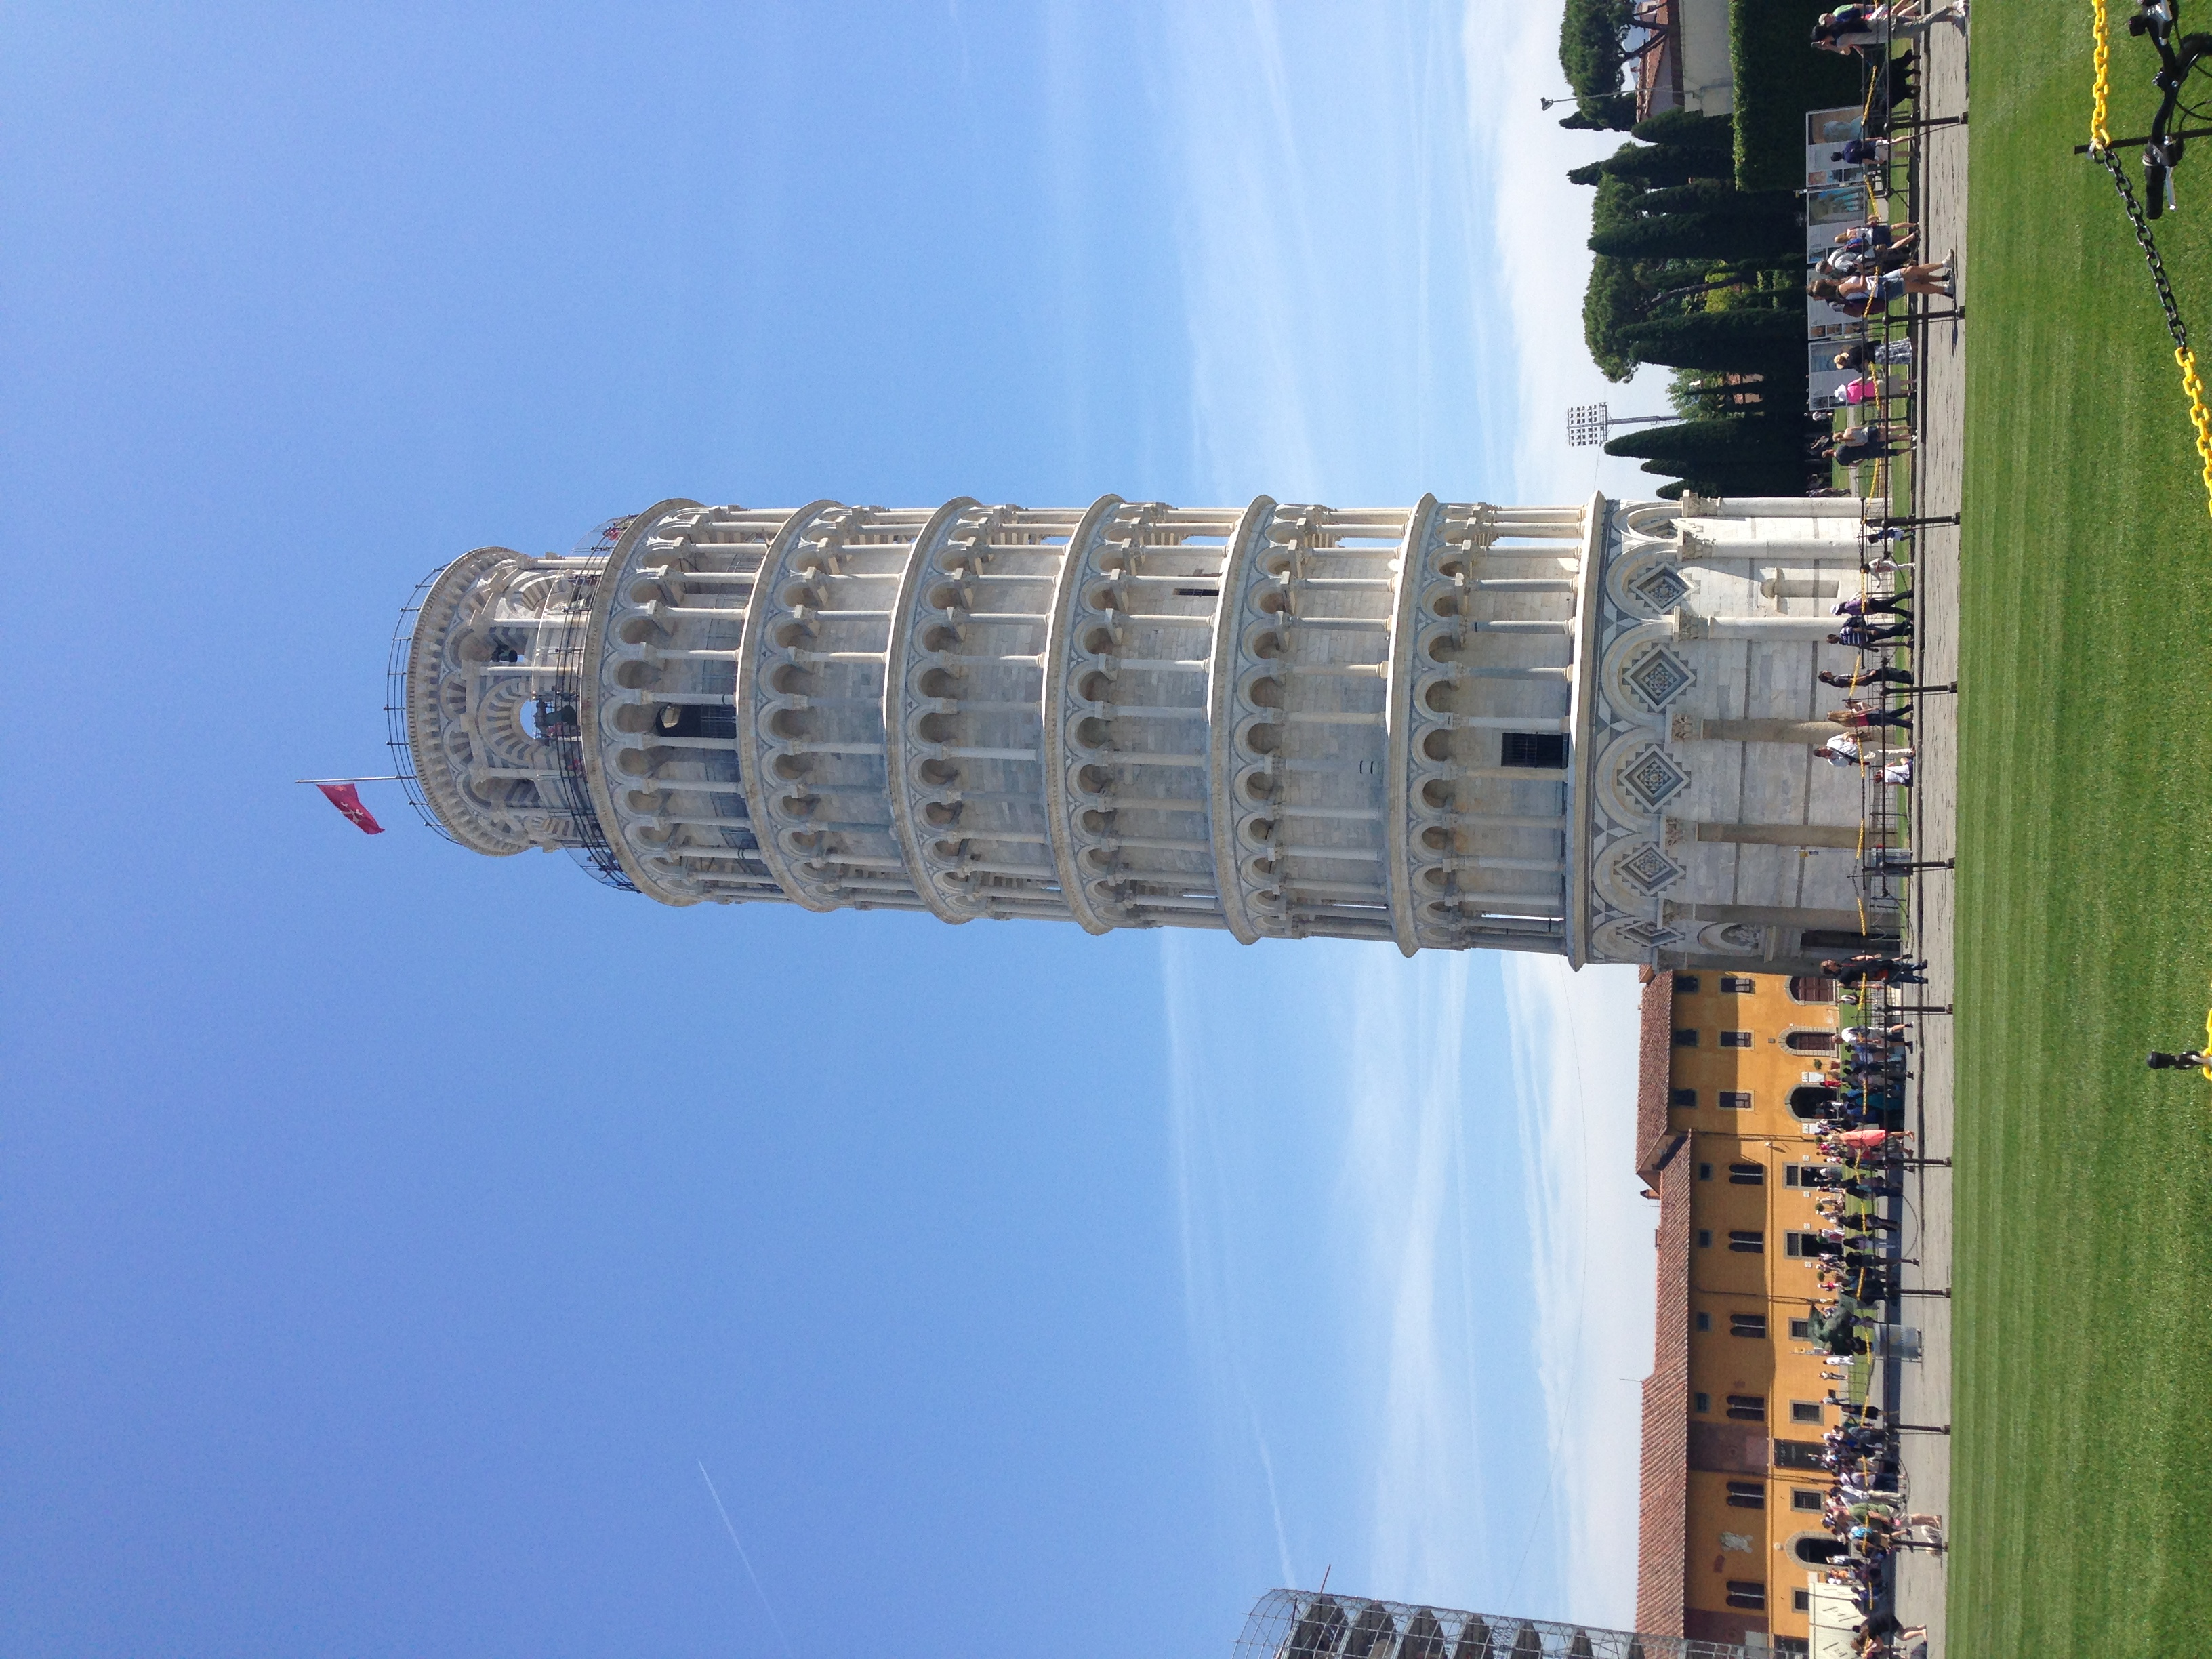 Leaning Tower of Pisa - amazing how clean it is!